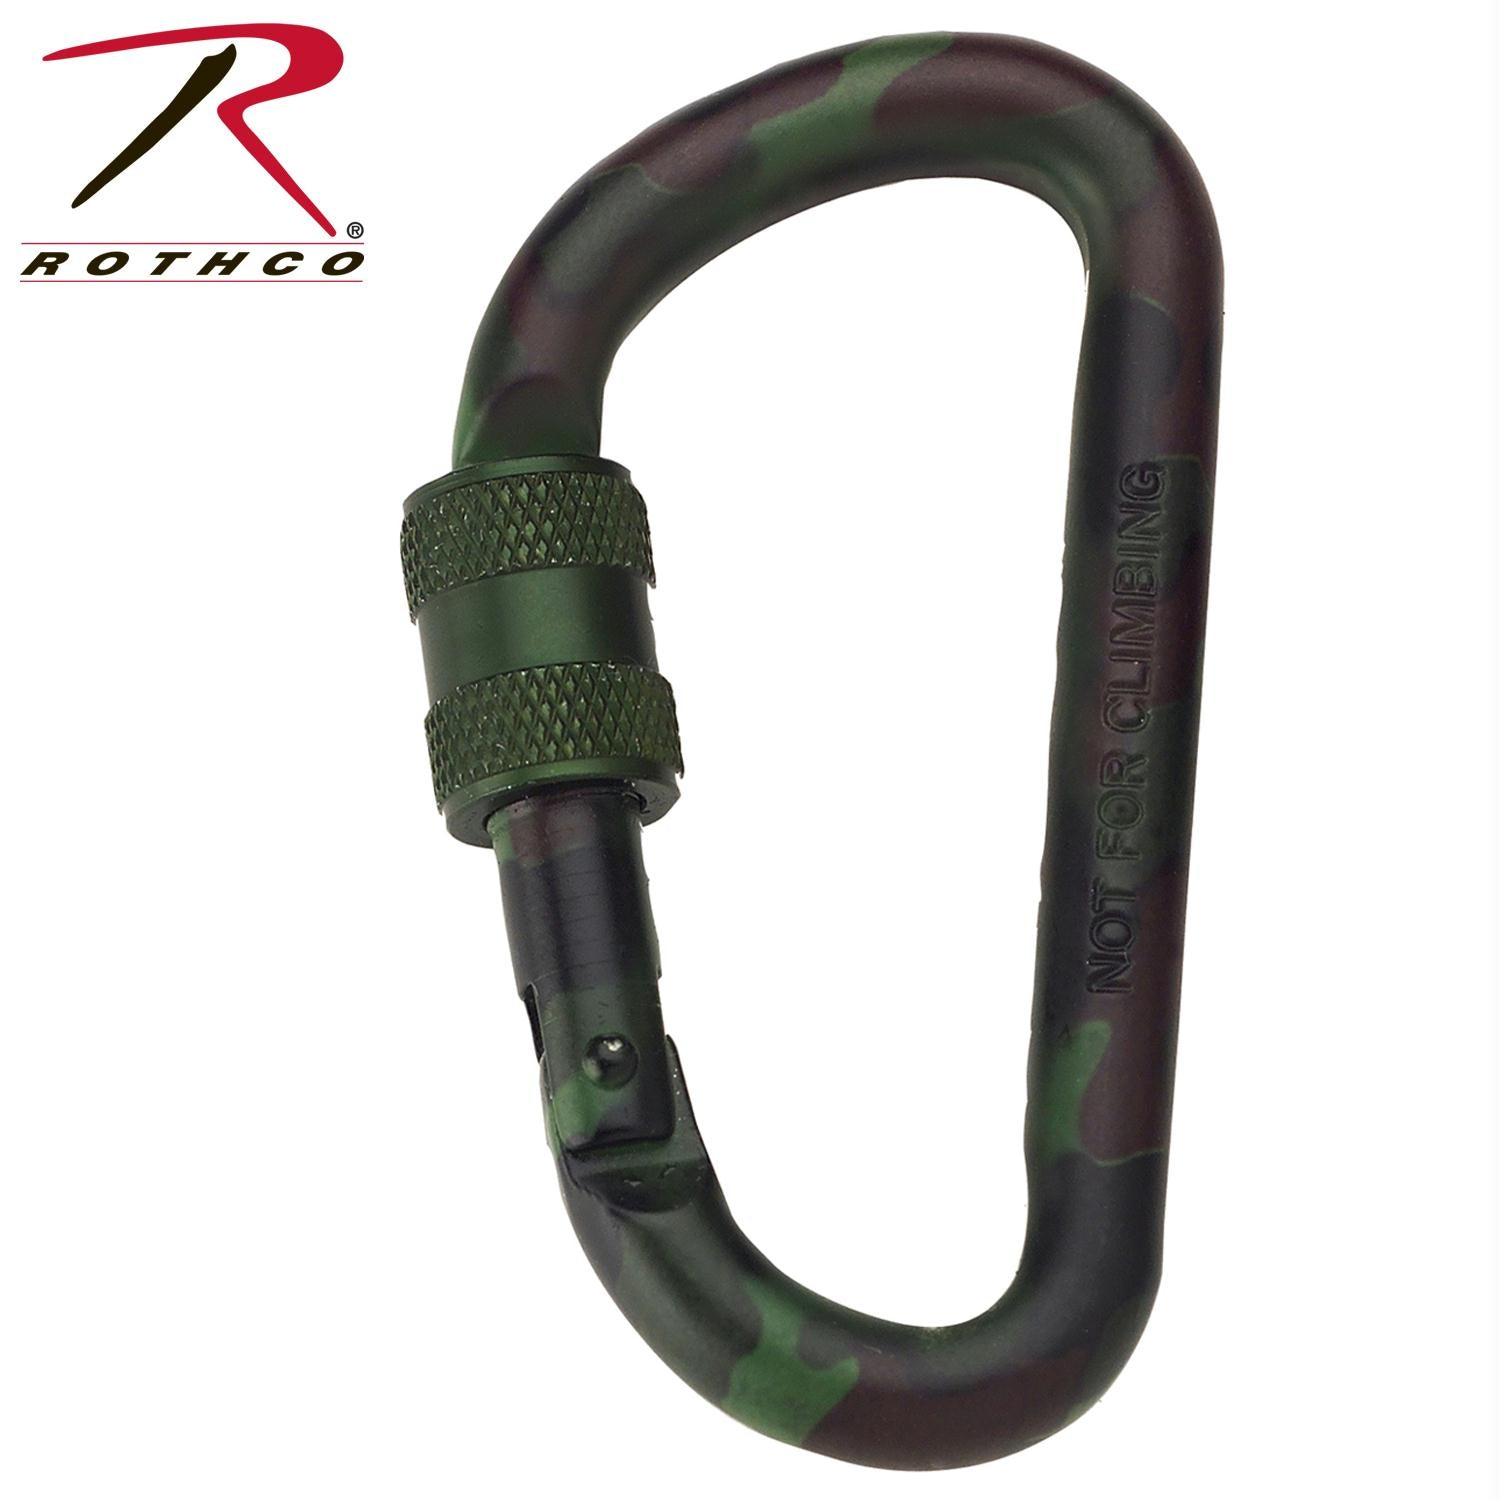 Rothco 80MM Locking Carabiner - Woodland Camo